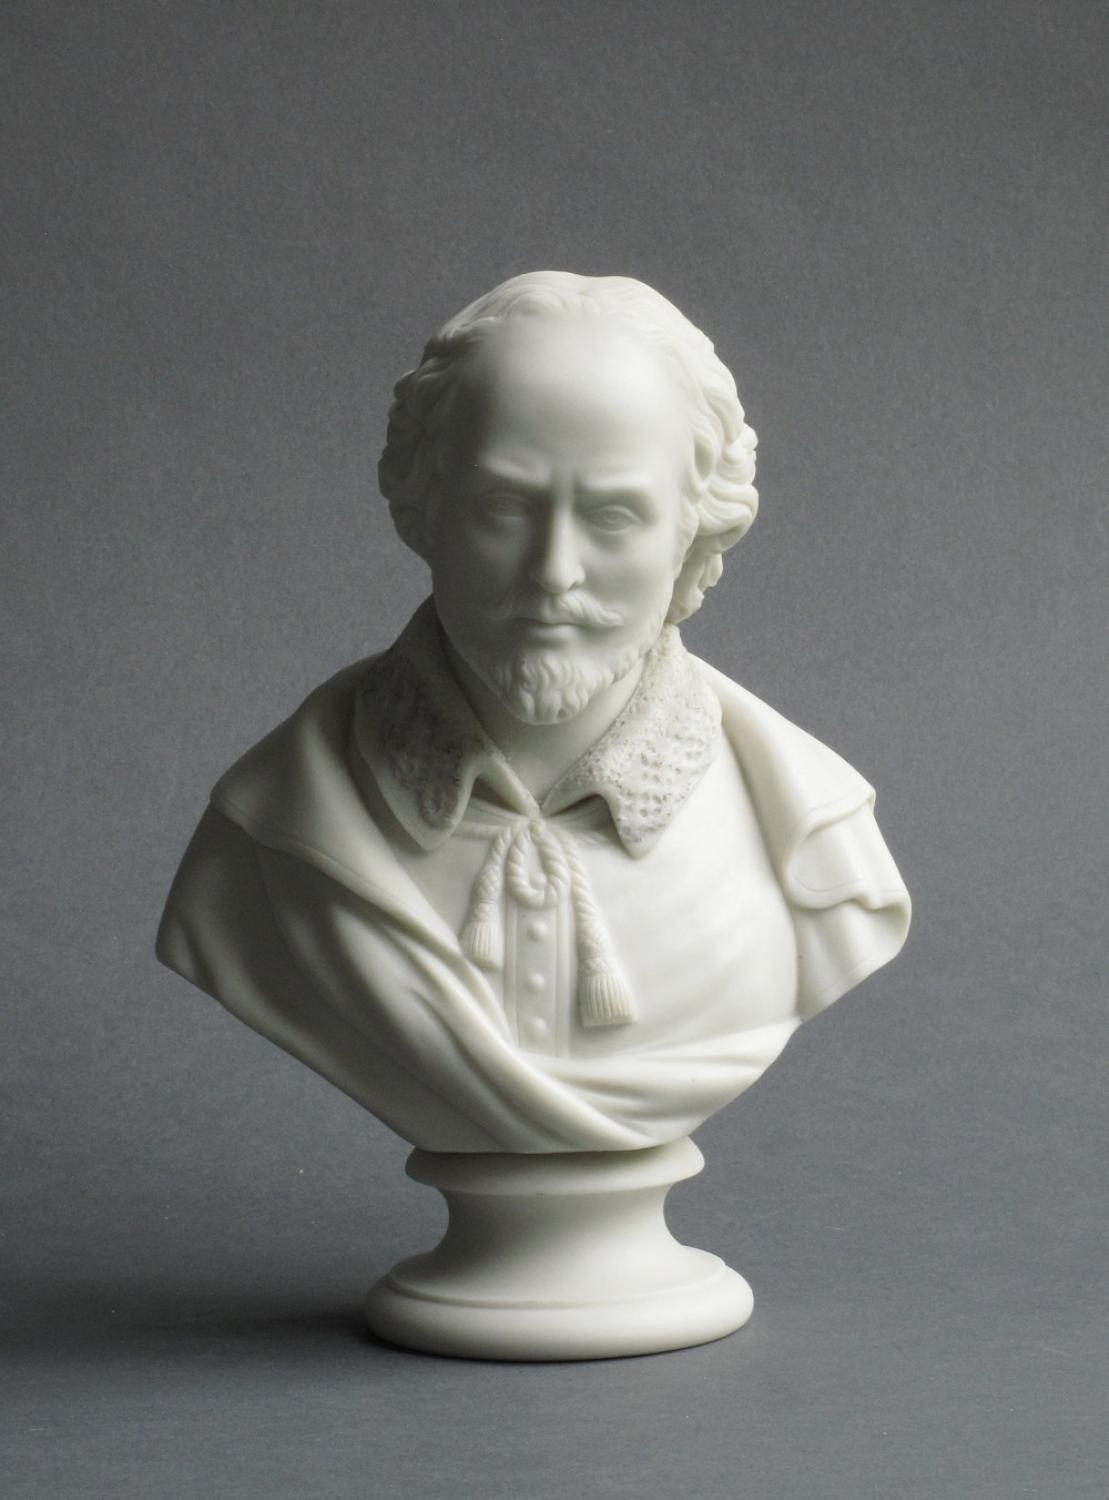 Copeland Parian bust of William Shakespeare